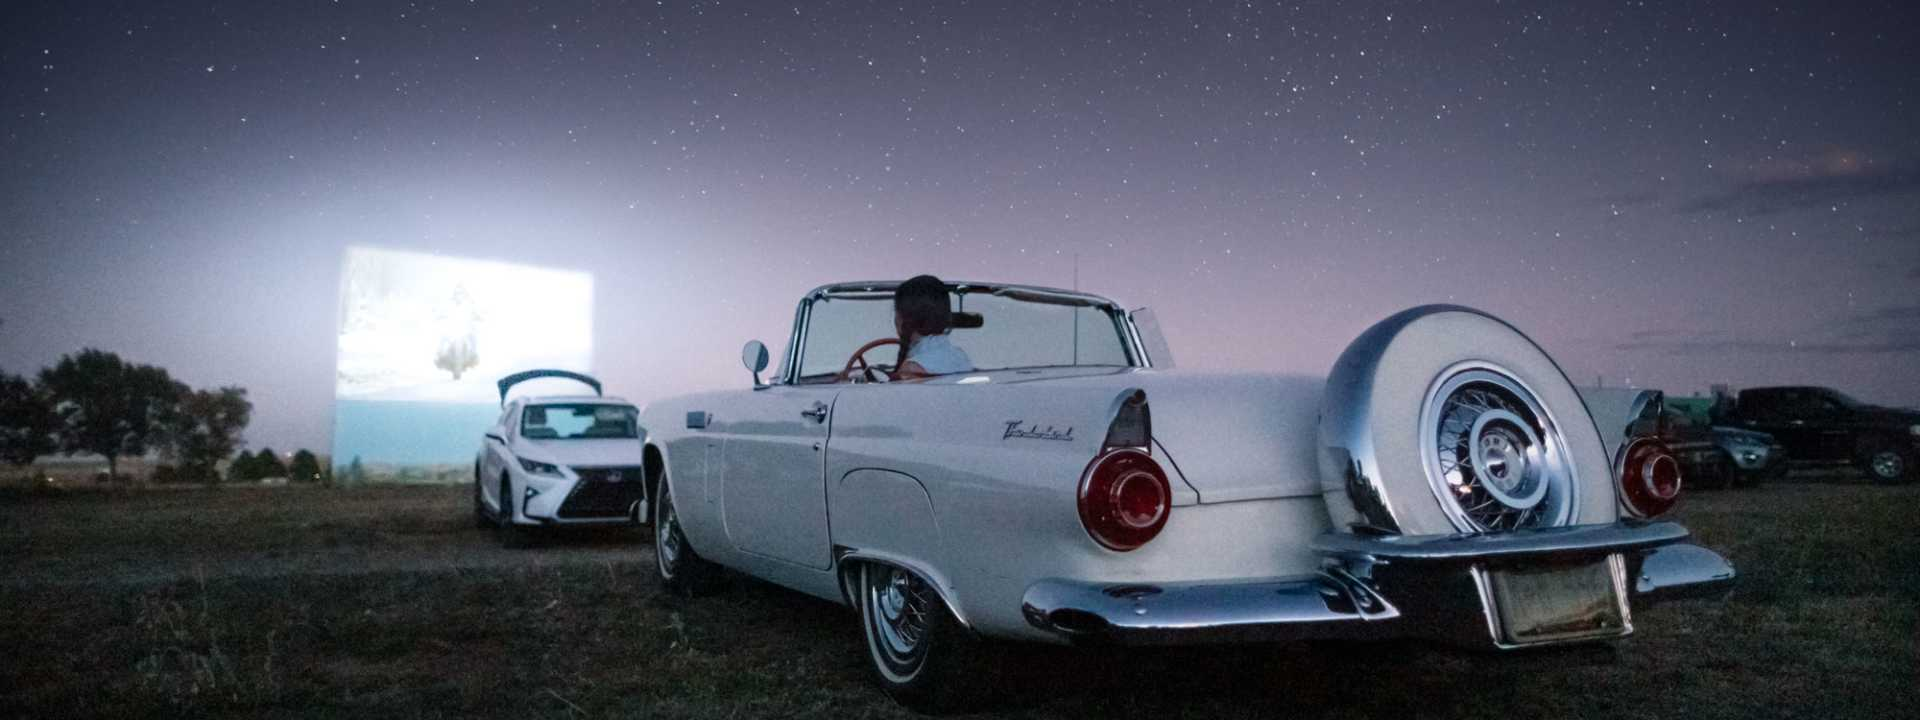 A vintage car at a drive in theater